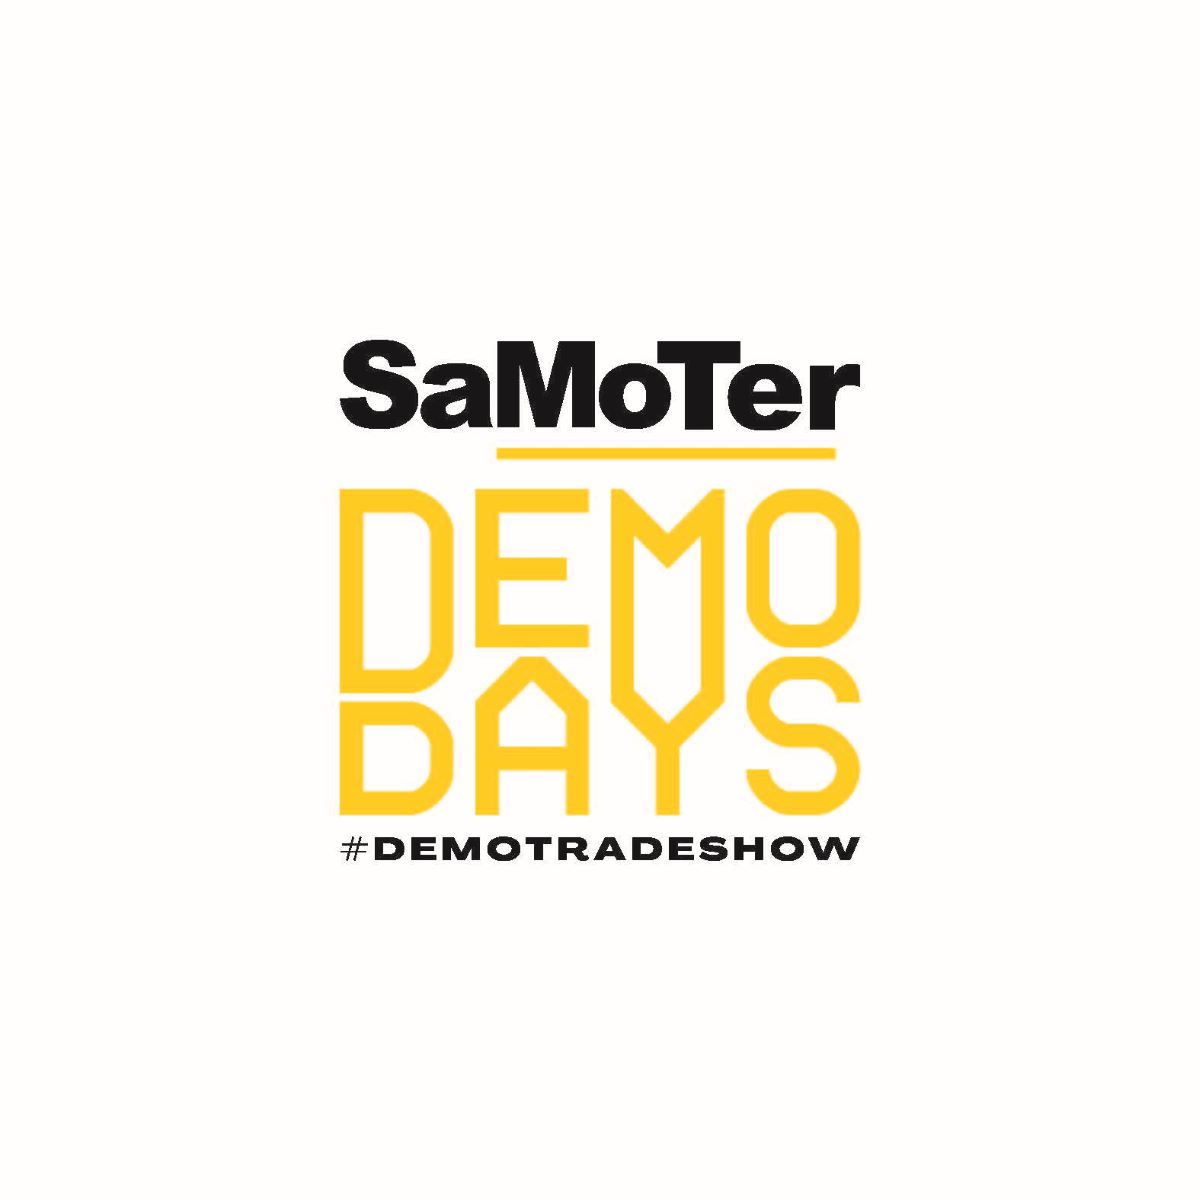 SAMOTER DEMO DAYS: DEBUT POSTPONED FOR NEW EVENT IN A QUARRY